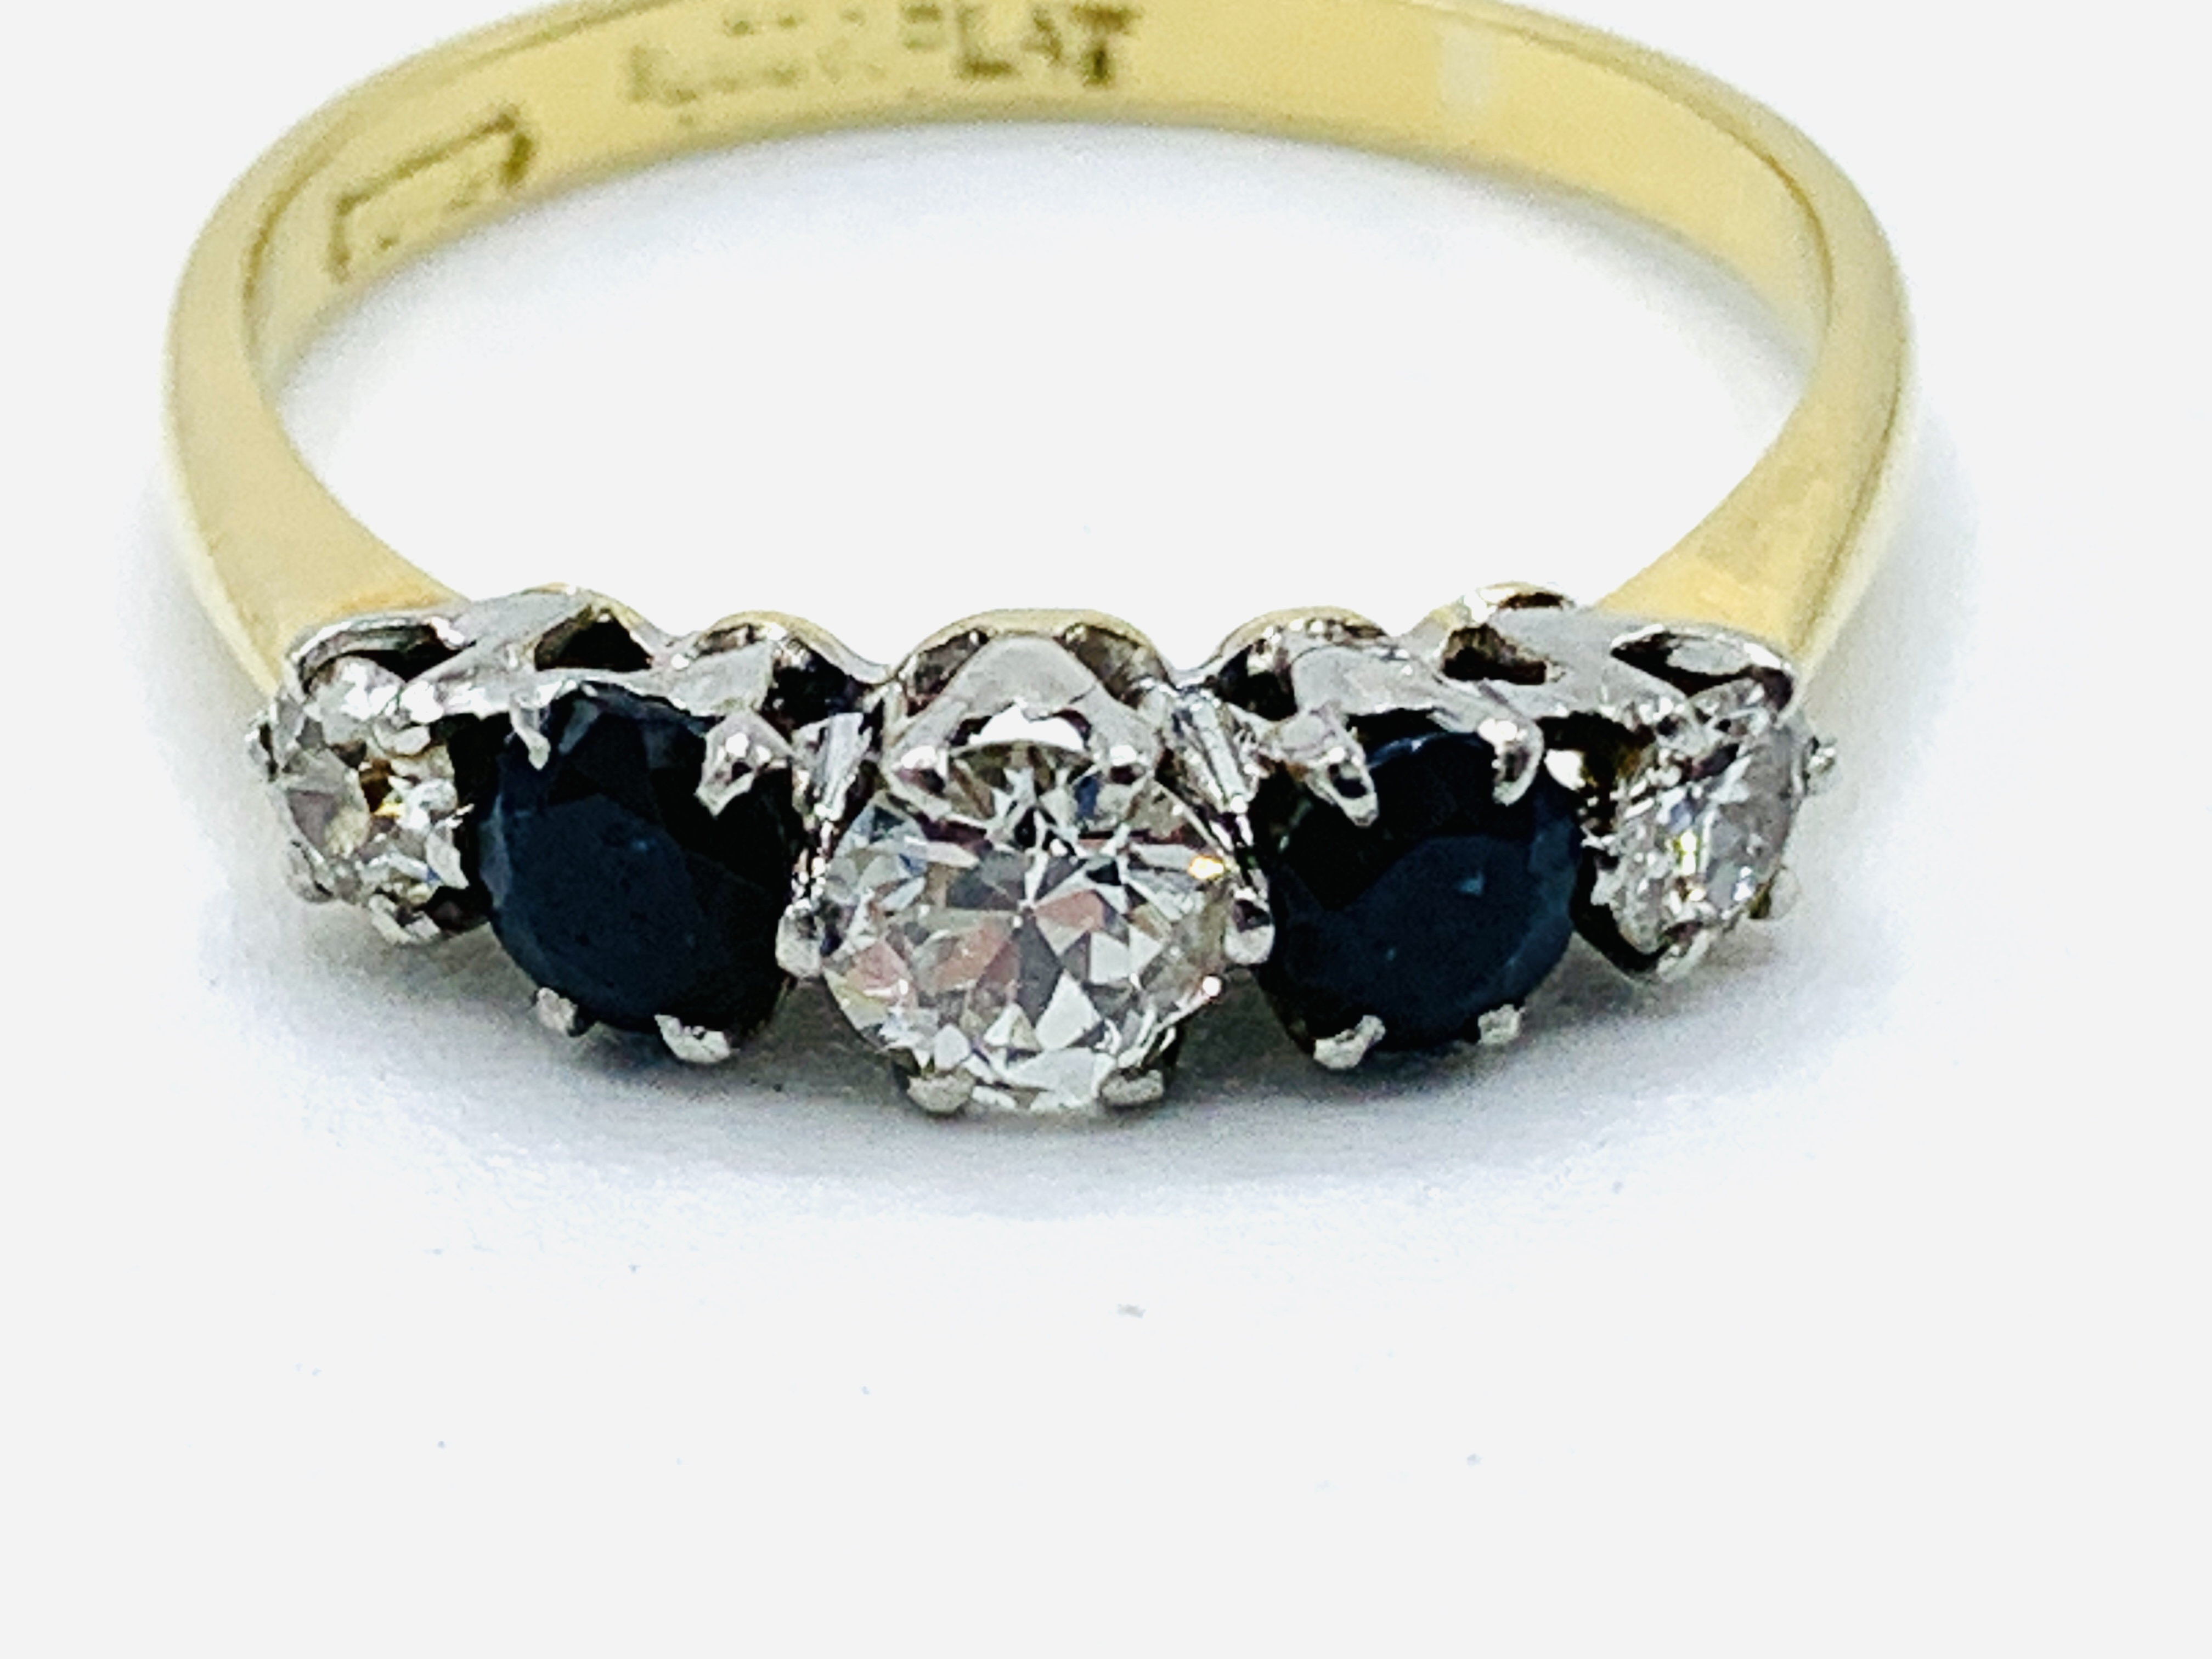 18ct gold and platinum claw set ring of 3 diamonds and 2 sapphires - Image 2 of 4